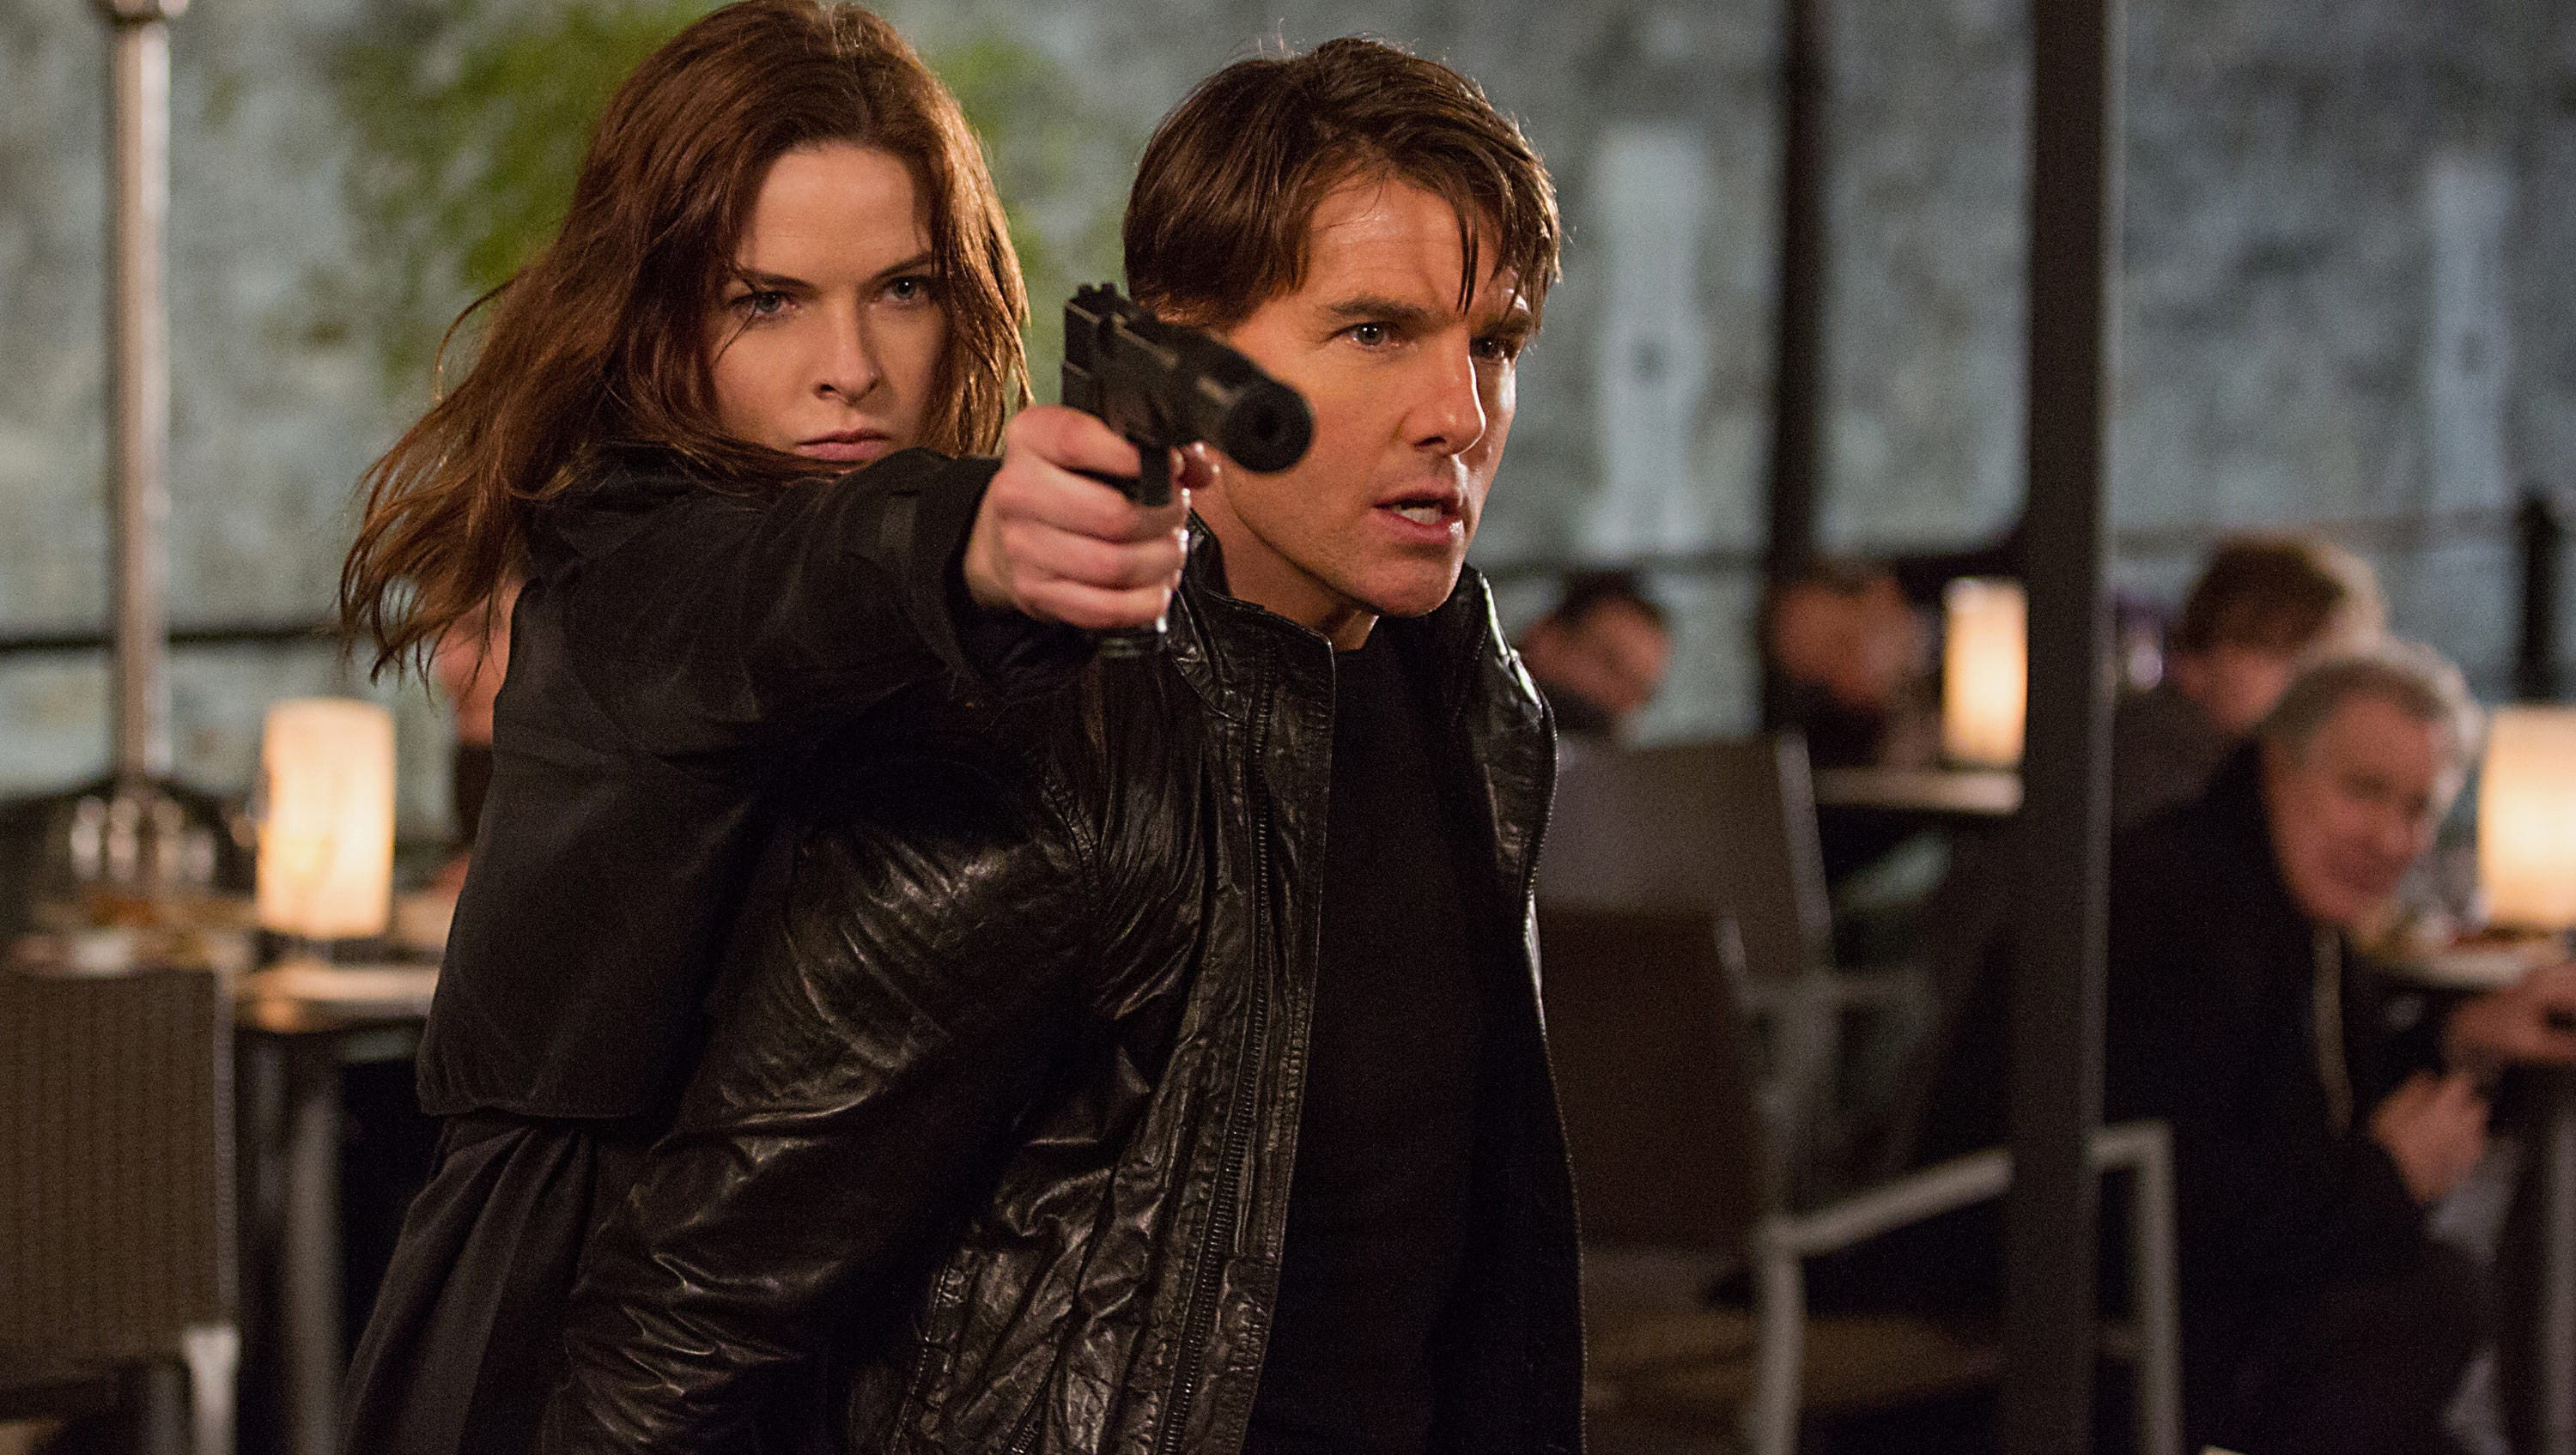 Mission Impossible All Six Movies Including Fallout Ranked